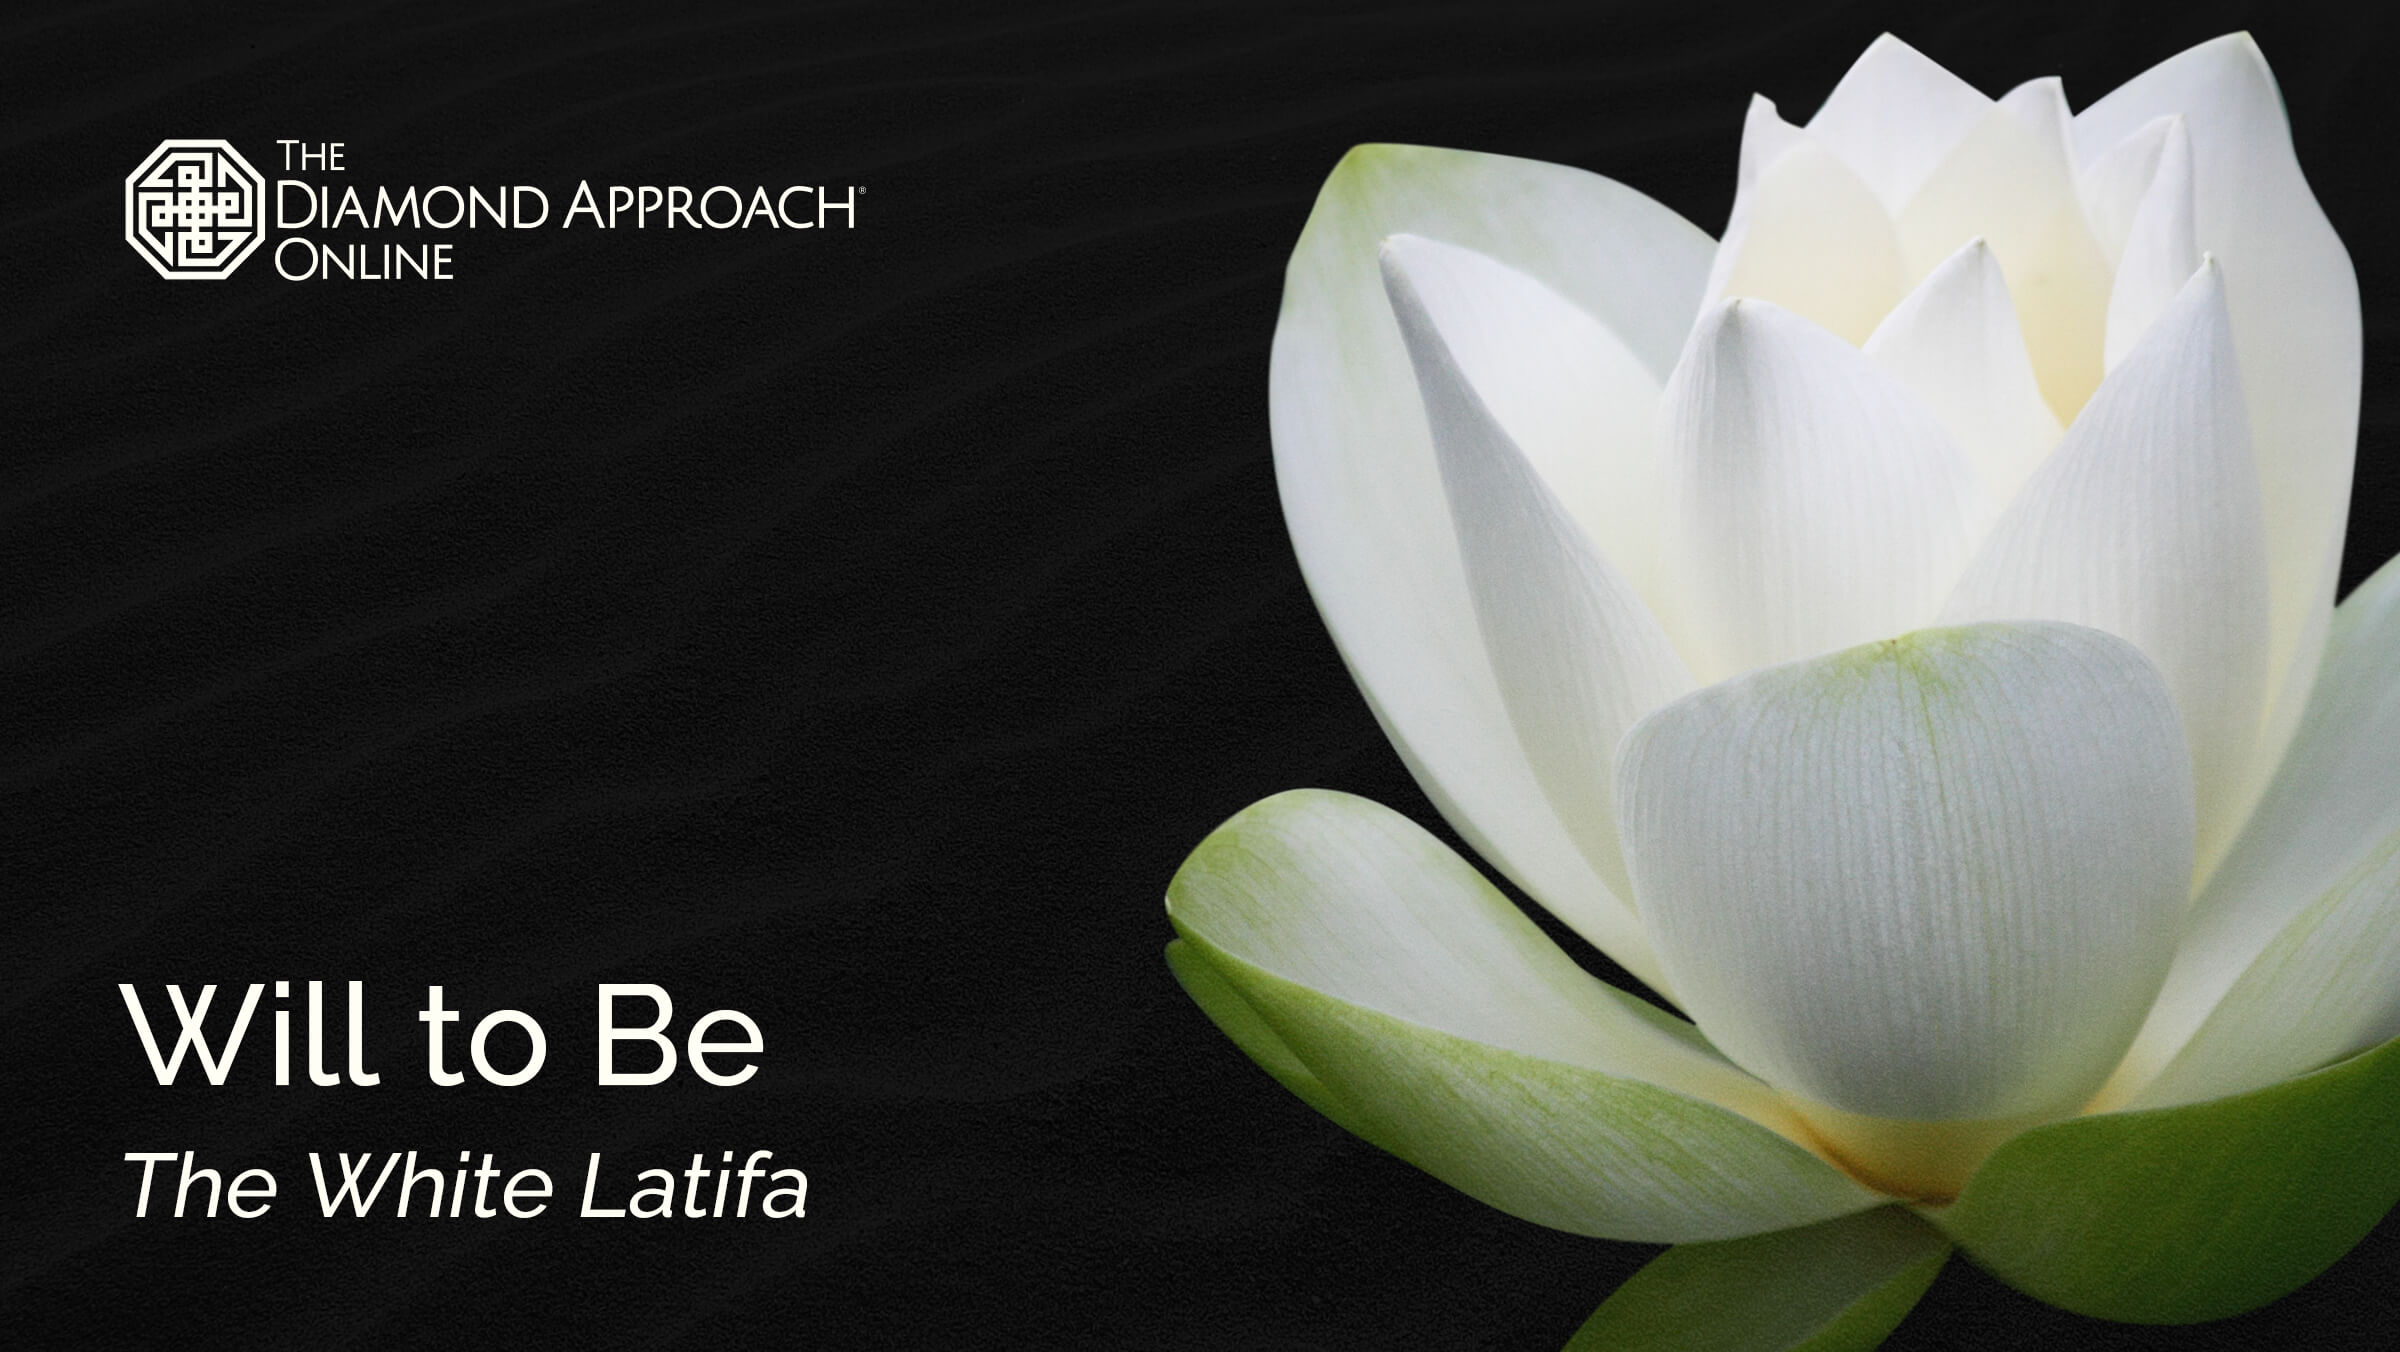 Will to Be: The White Latifa